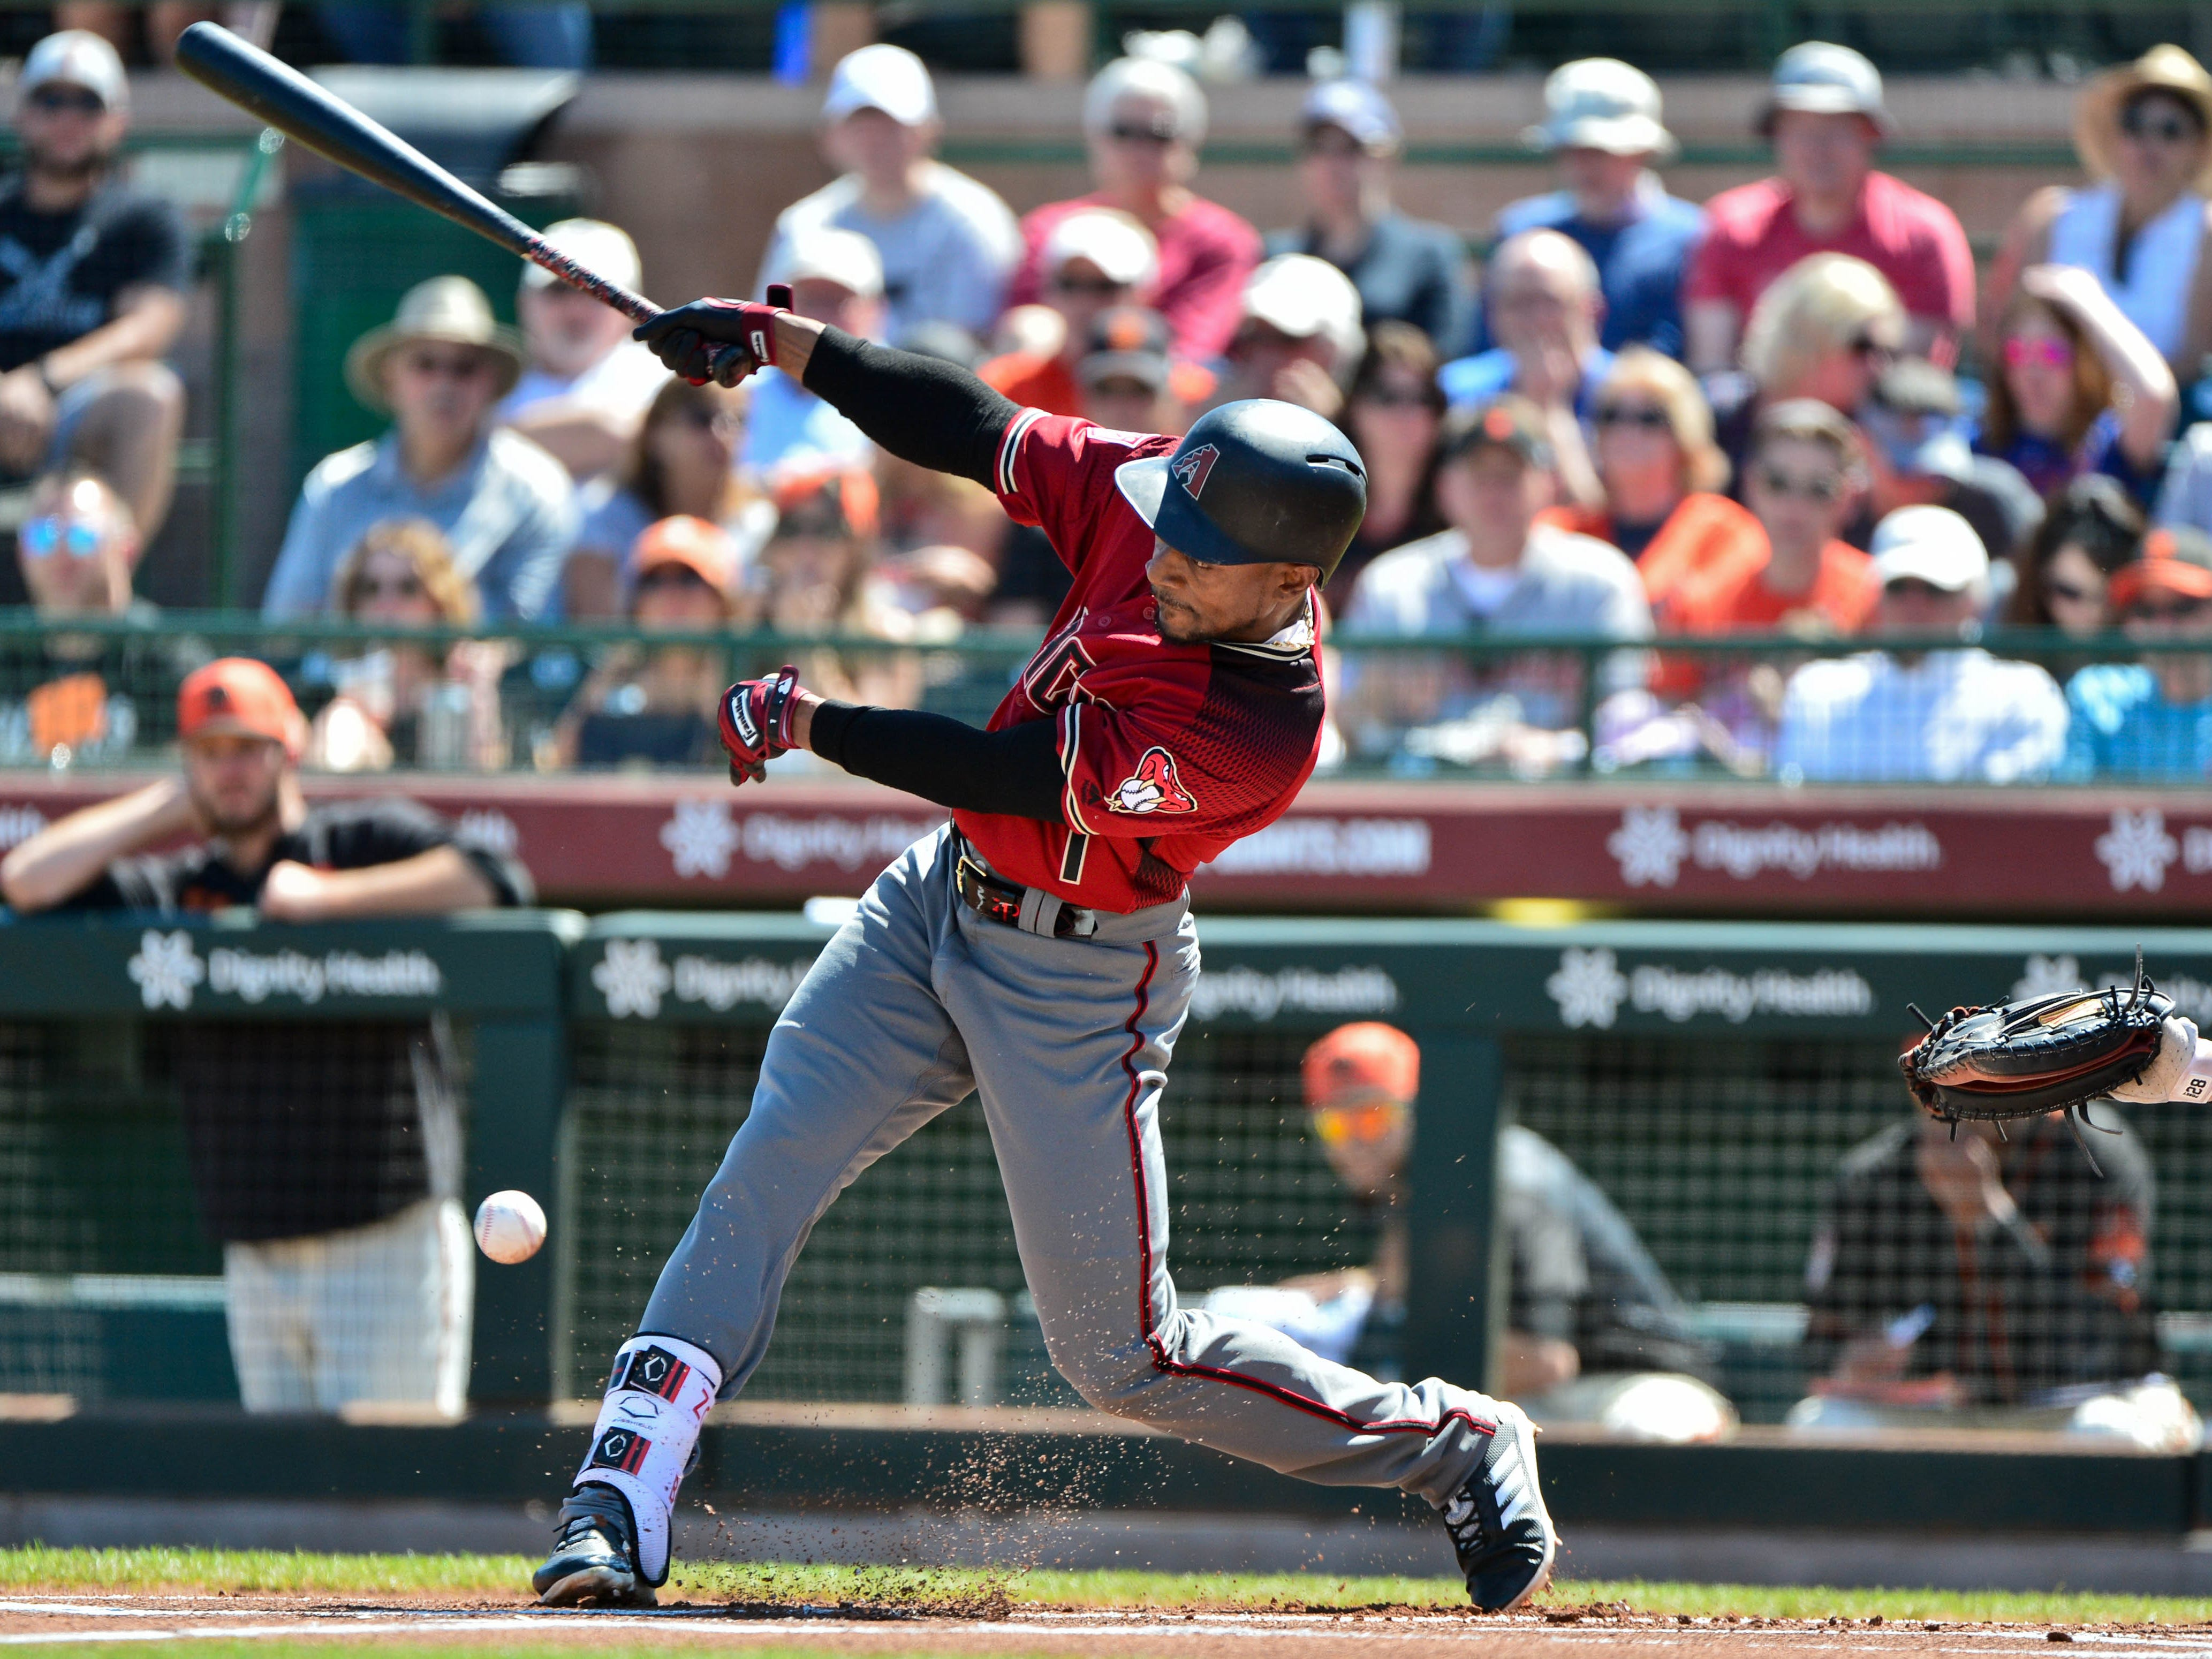 Mar 23, 2019; Scottsdale, AZ, USA; Arizona Diamondbacks center fielder Jarrod Dyson (1) doubles during the first inning against the San Francisco Giants at Scottsdale Stadium.